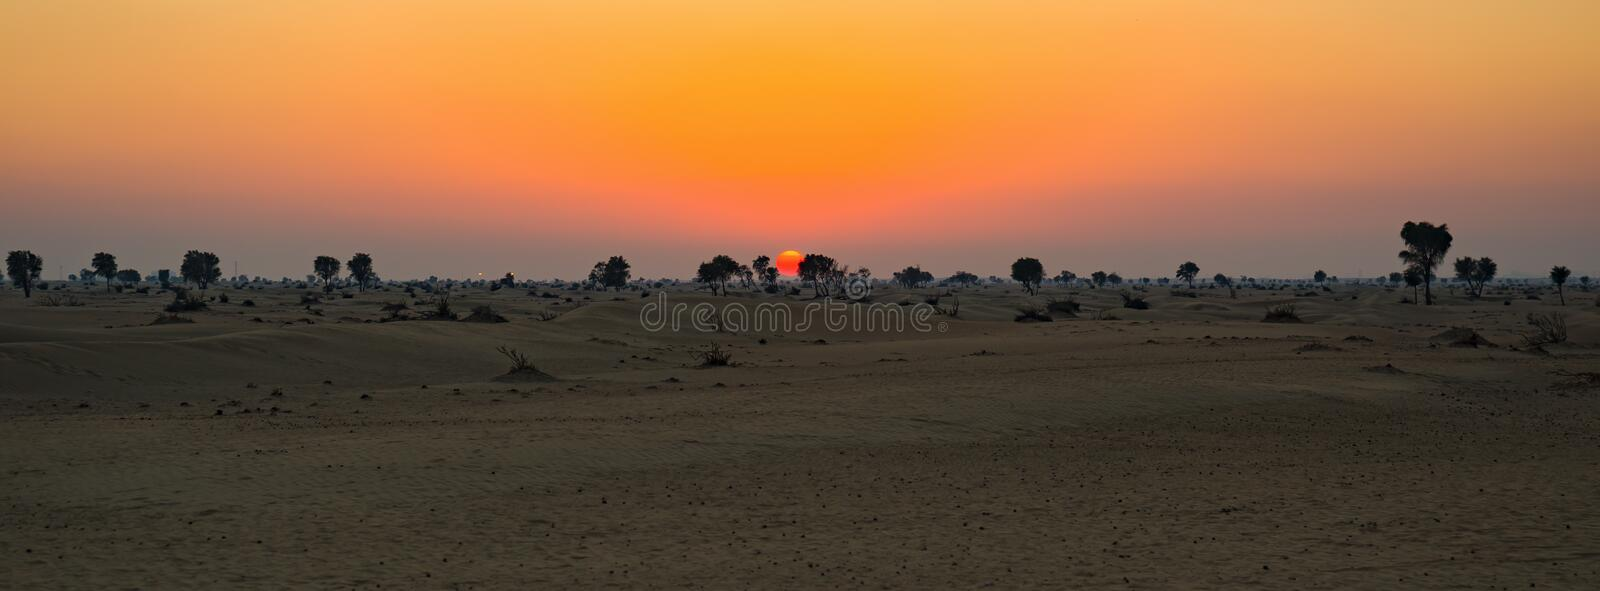 Sunset in the Arabian desert royalty free stock photos